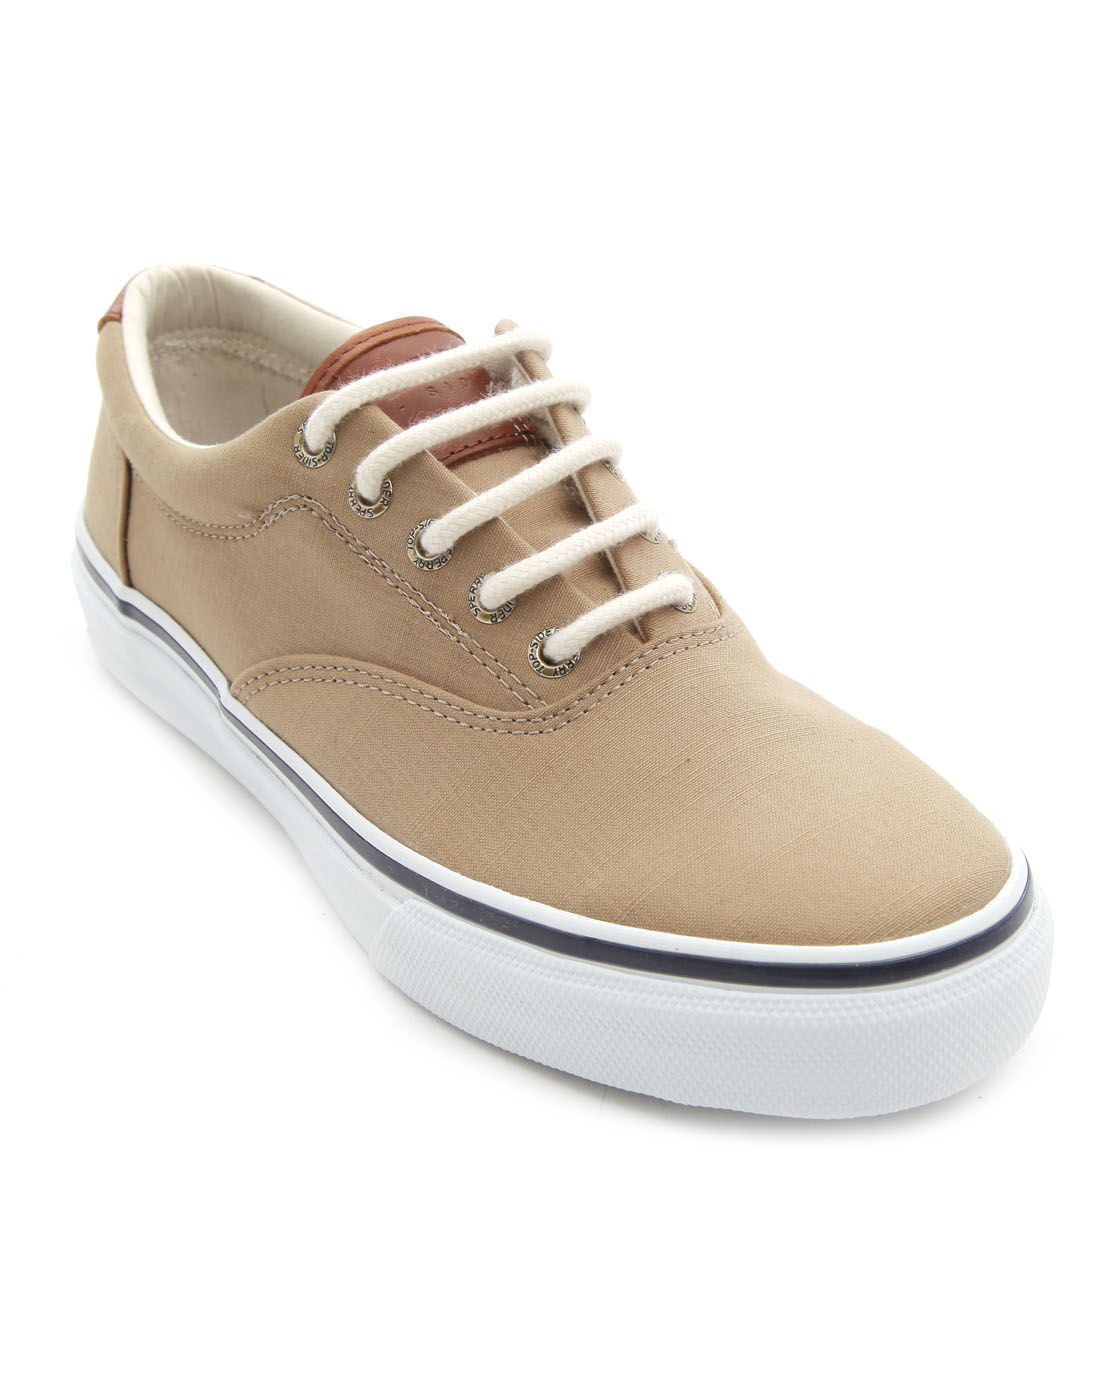 Top Sider Tennis Shoes